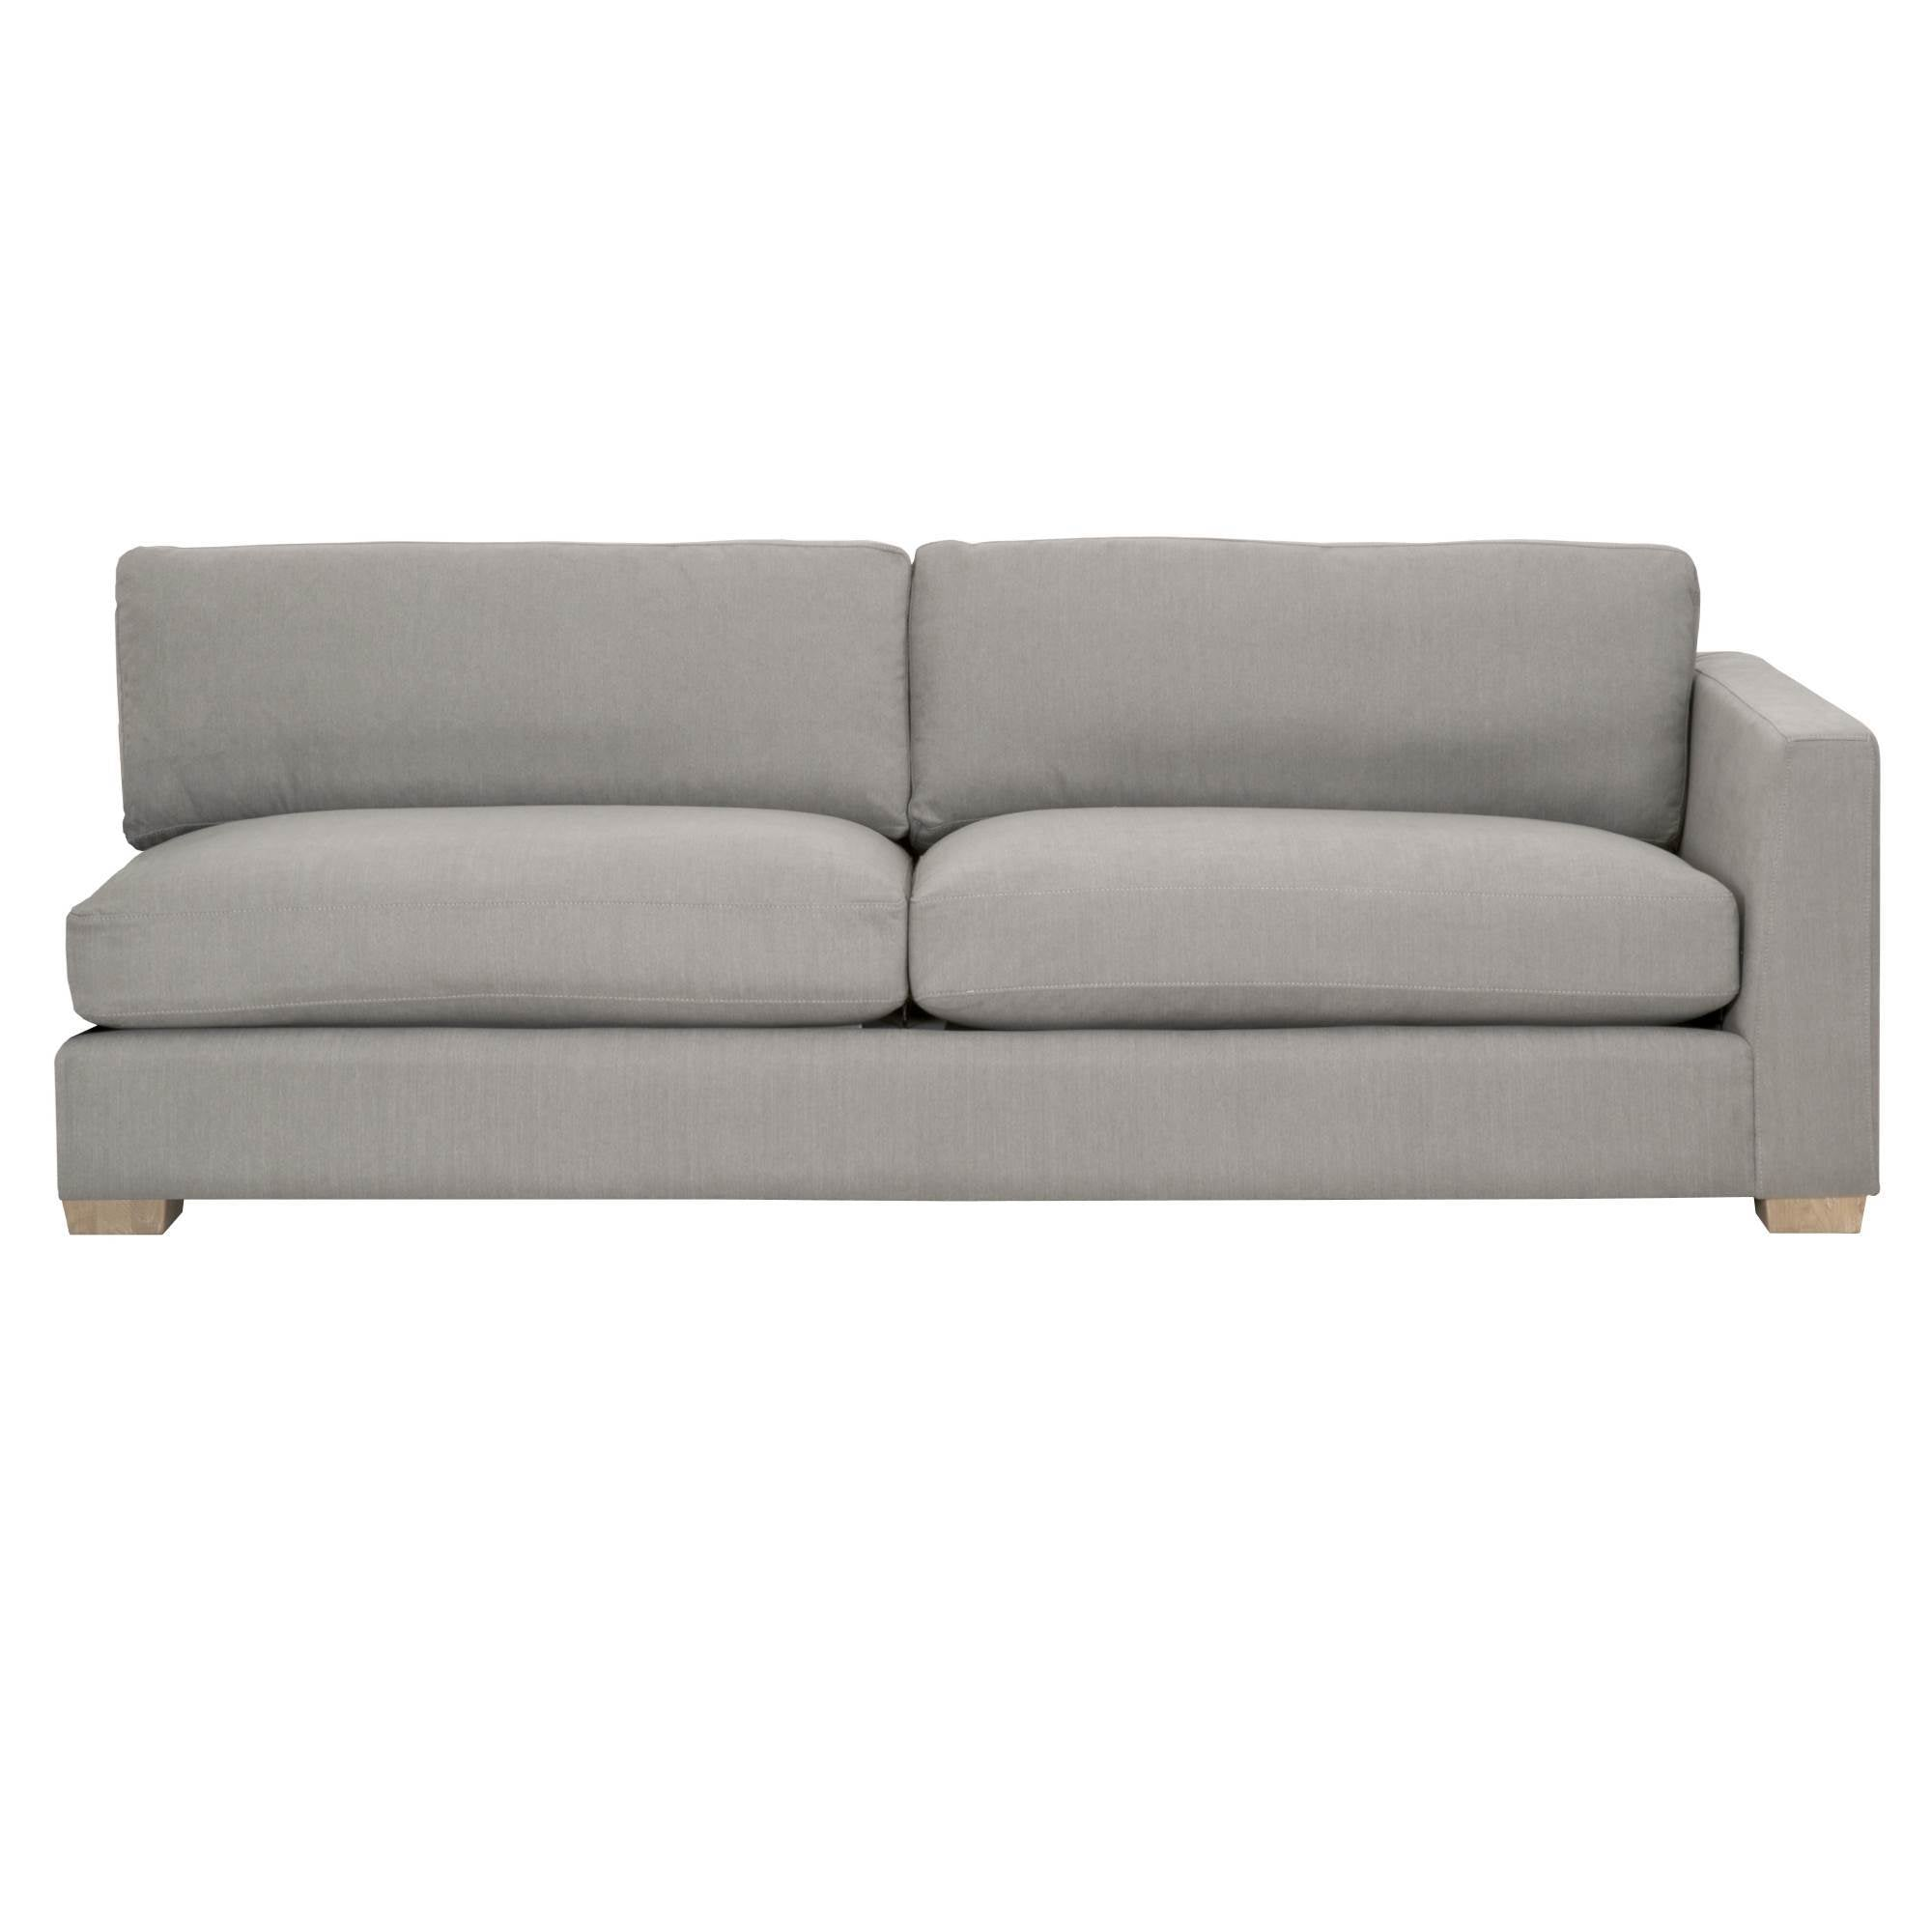 Hayden Modular Taper 2-Seat Right Arm Sofa